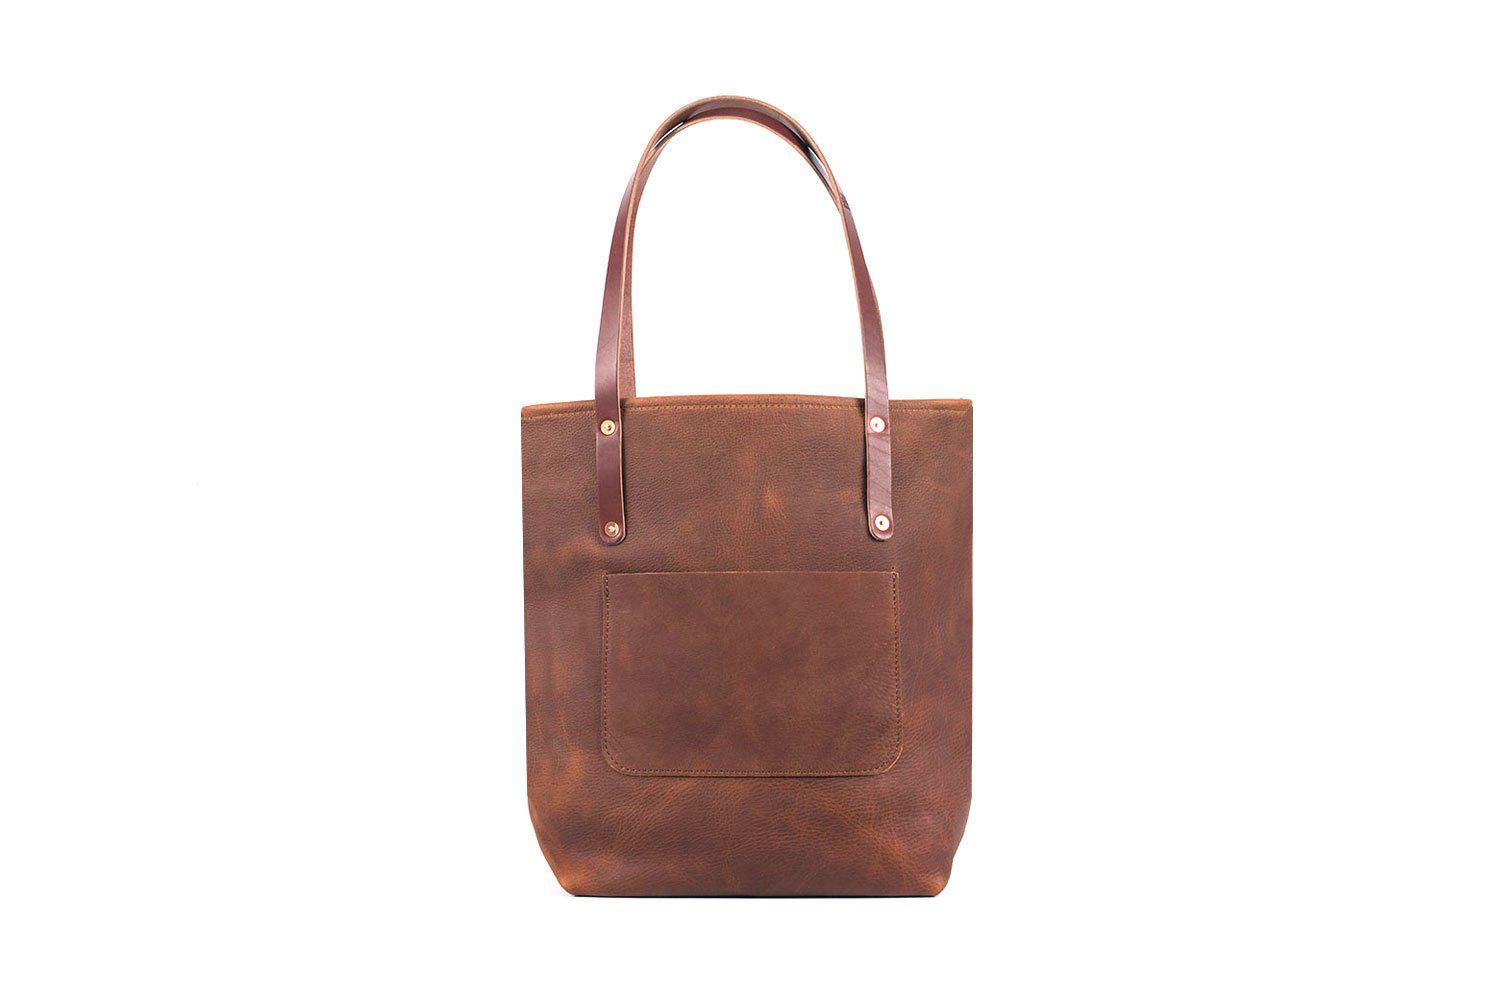 AVERY LEATHER TOTE BAG - SLIM LARGE DELUXE